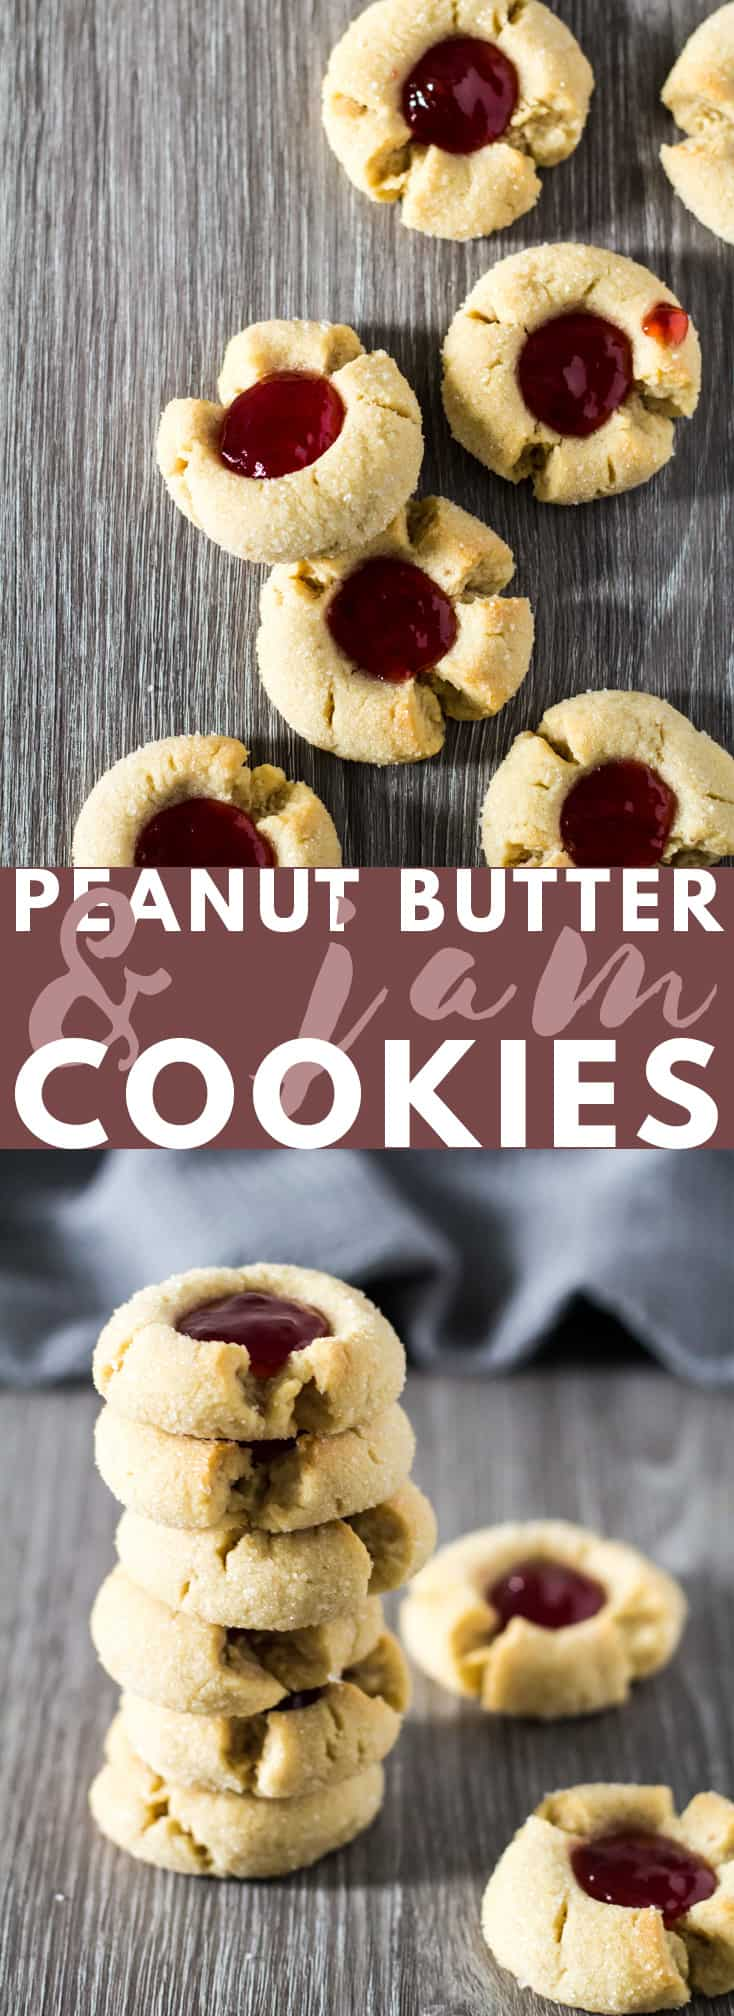 Peanut Butter & Jam Thumbprint Cookies - Deliciously soft and crispy thumbprint cookies loaded with peanut butter and filled with raspberry jam. The perfect cookies for PB&J lovers! #peanutbutter #cookies #recipe